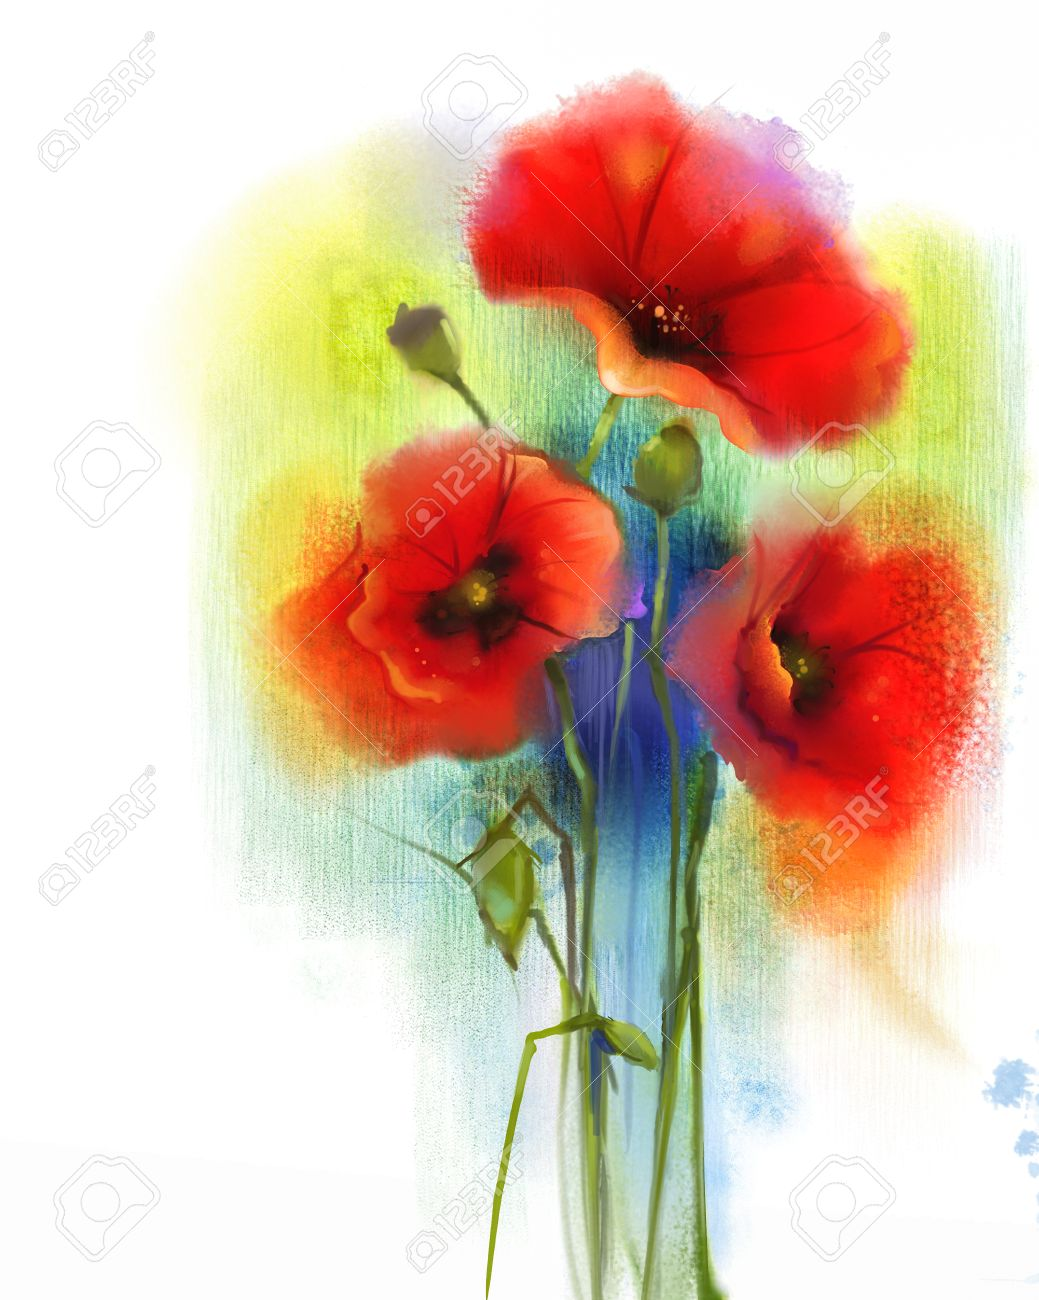 Watercolor red poppy flower painting hand paint poppies flowers stock photo watercolor red poppy flower painting hand paint poppies flowers in soft color and blur style blue green color background mightylinksfo